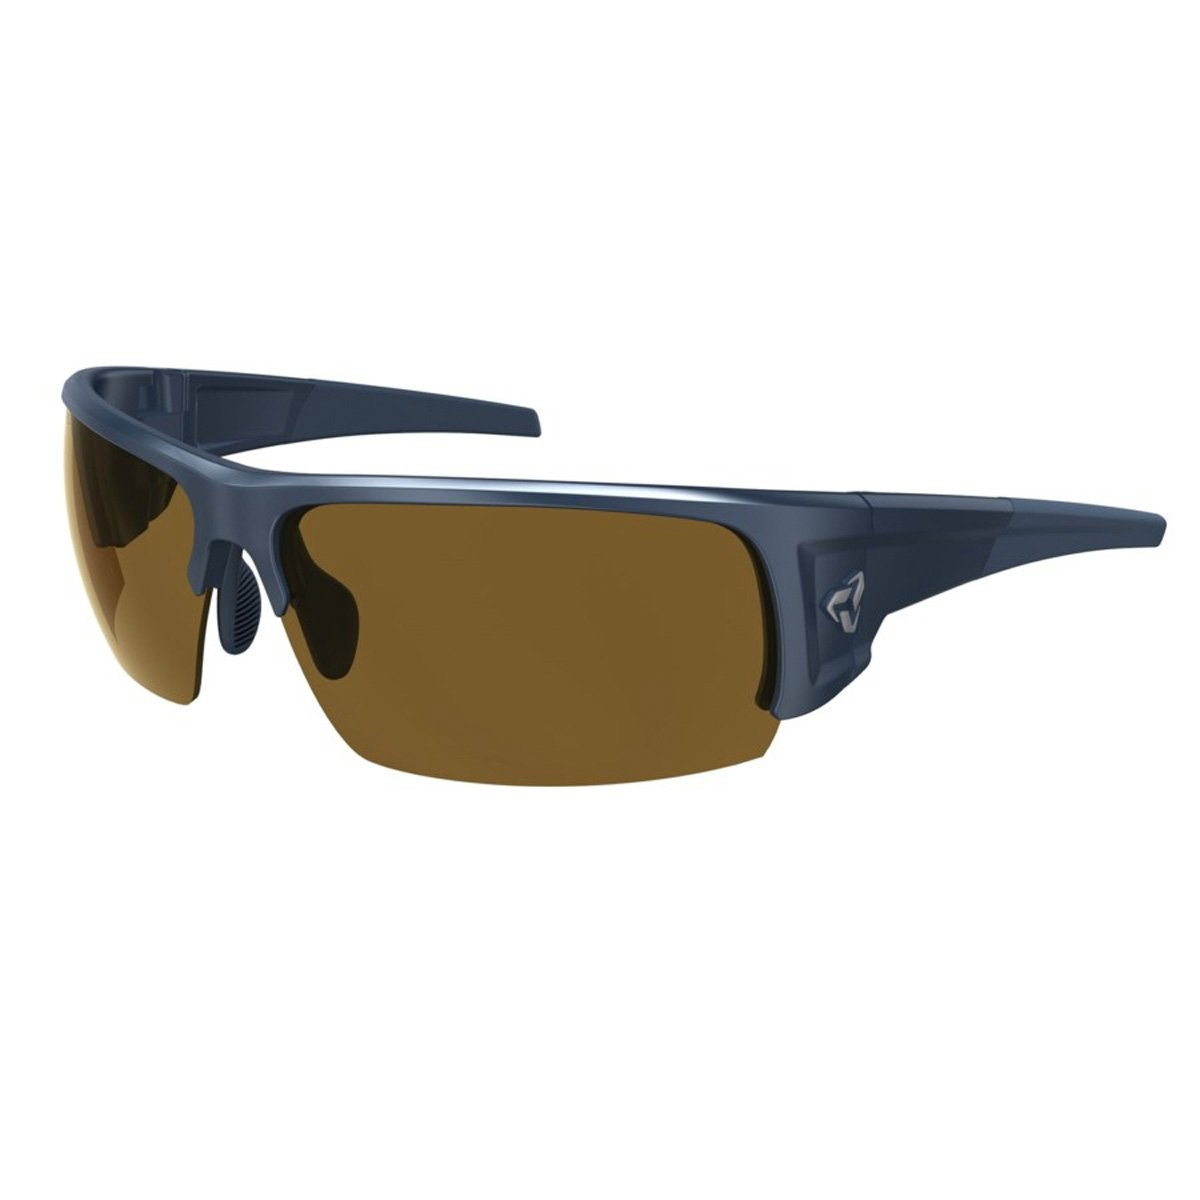 Ryders Eyewear Caliber Photochromic Lens Sunglasses